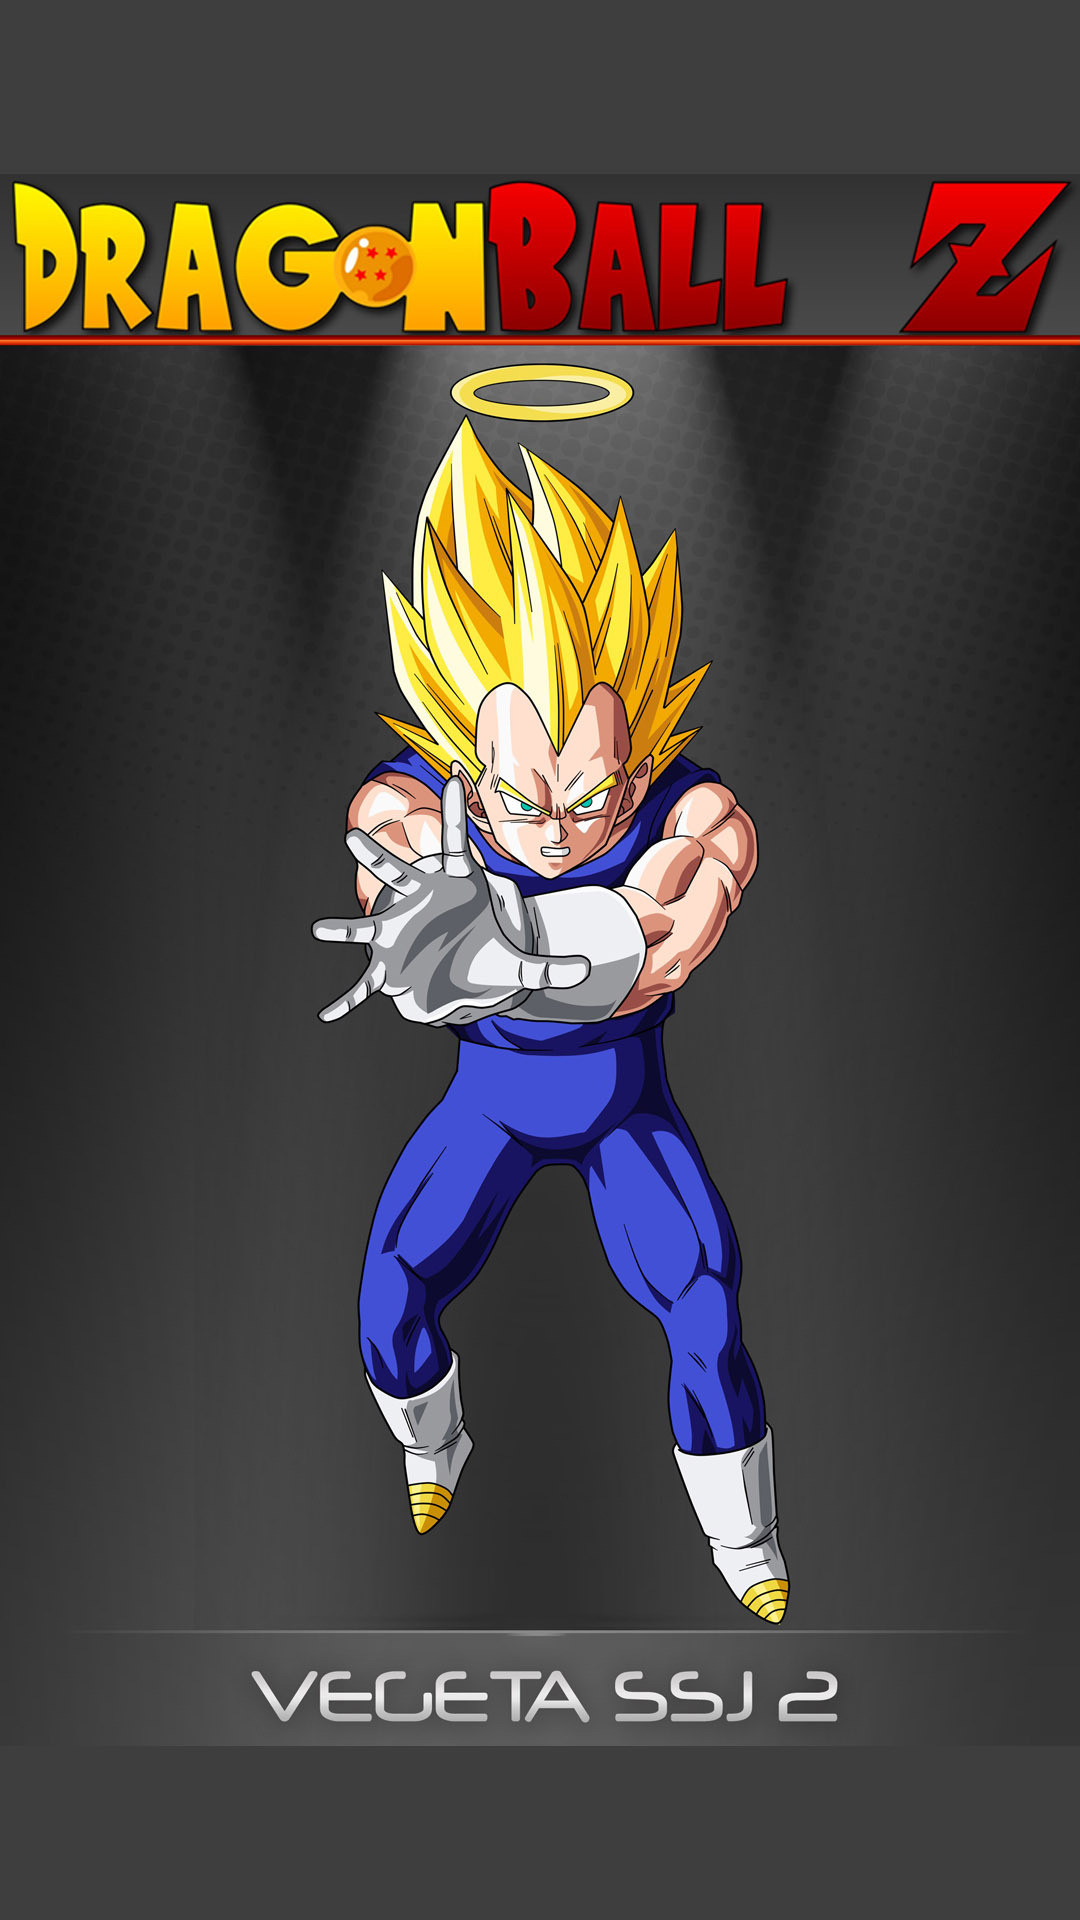 Vegeta wallpapers for mobile - Vegeta wallpapers for mobile ...